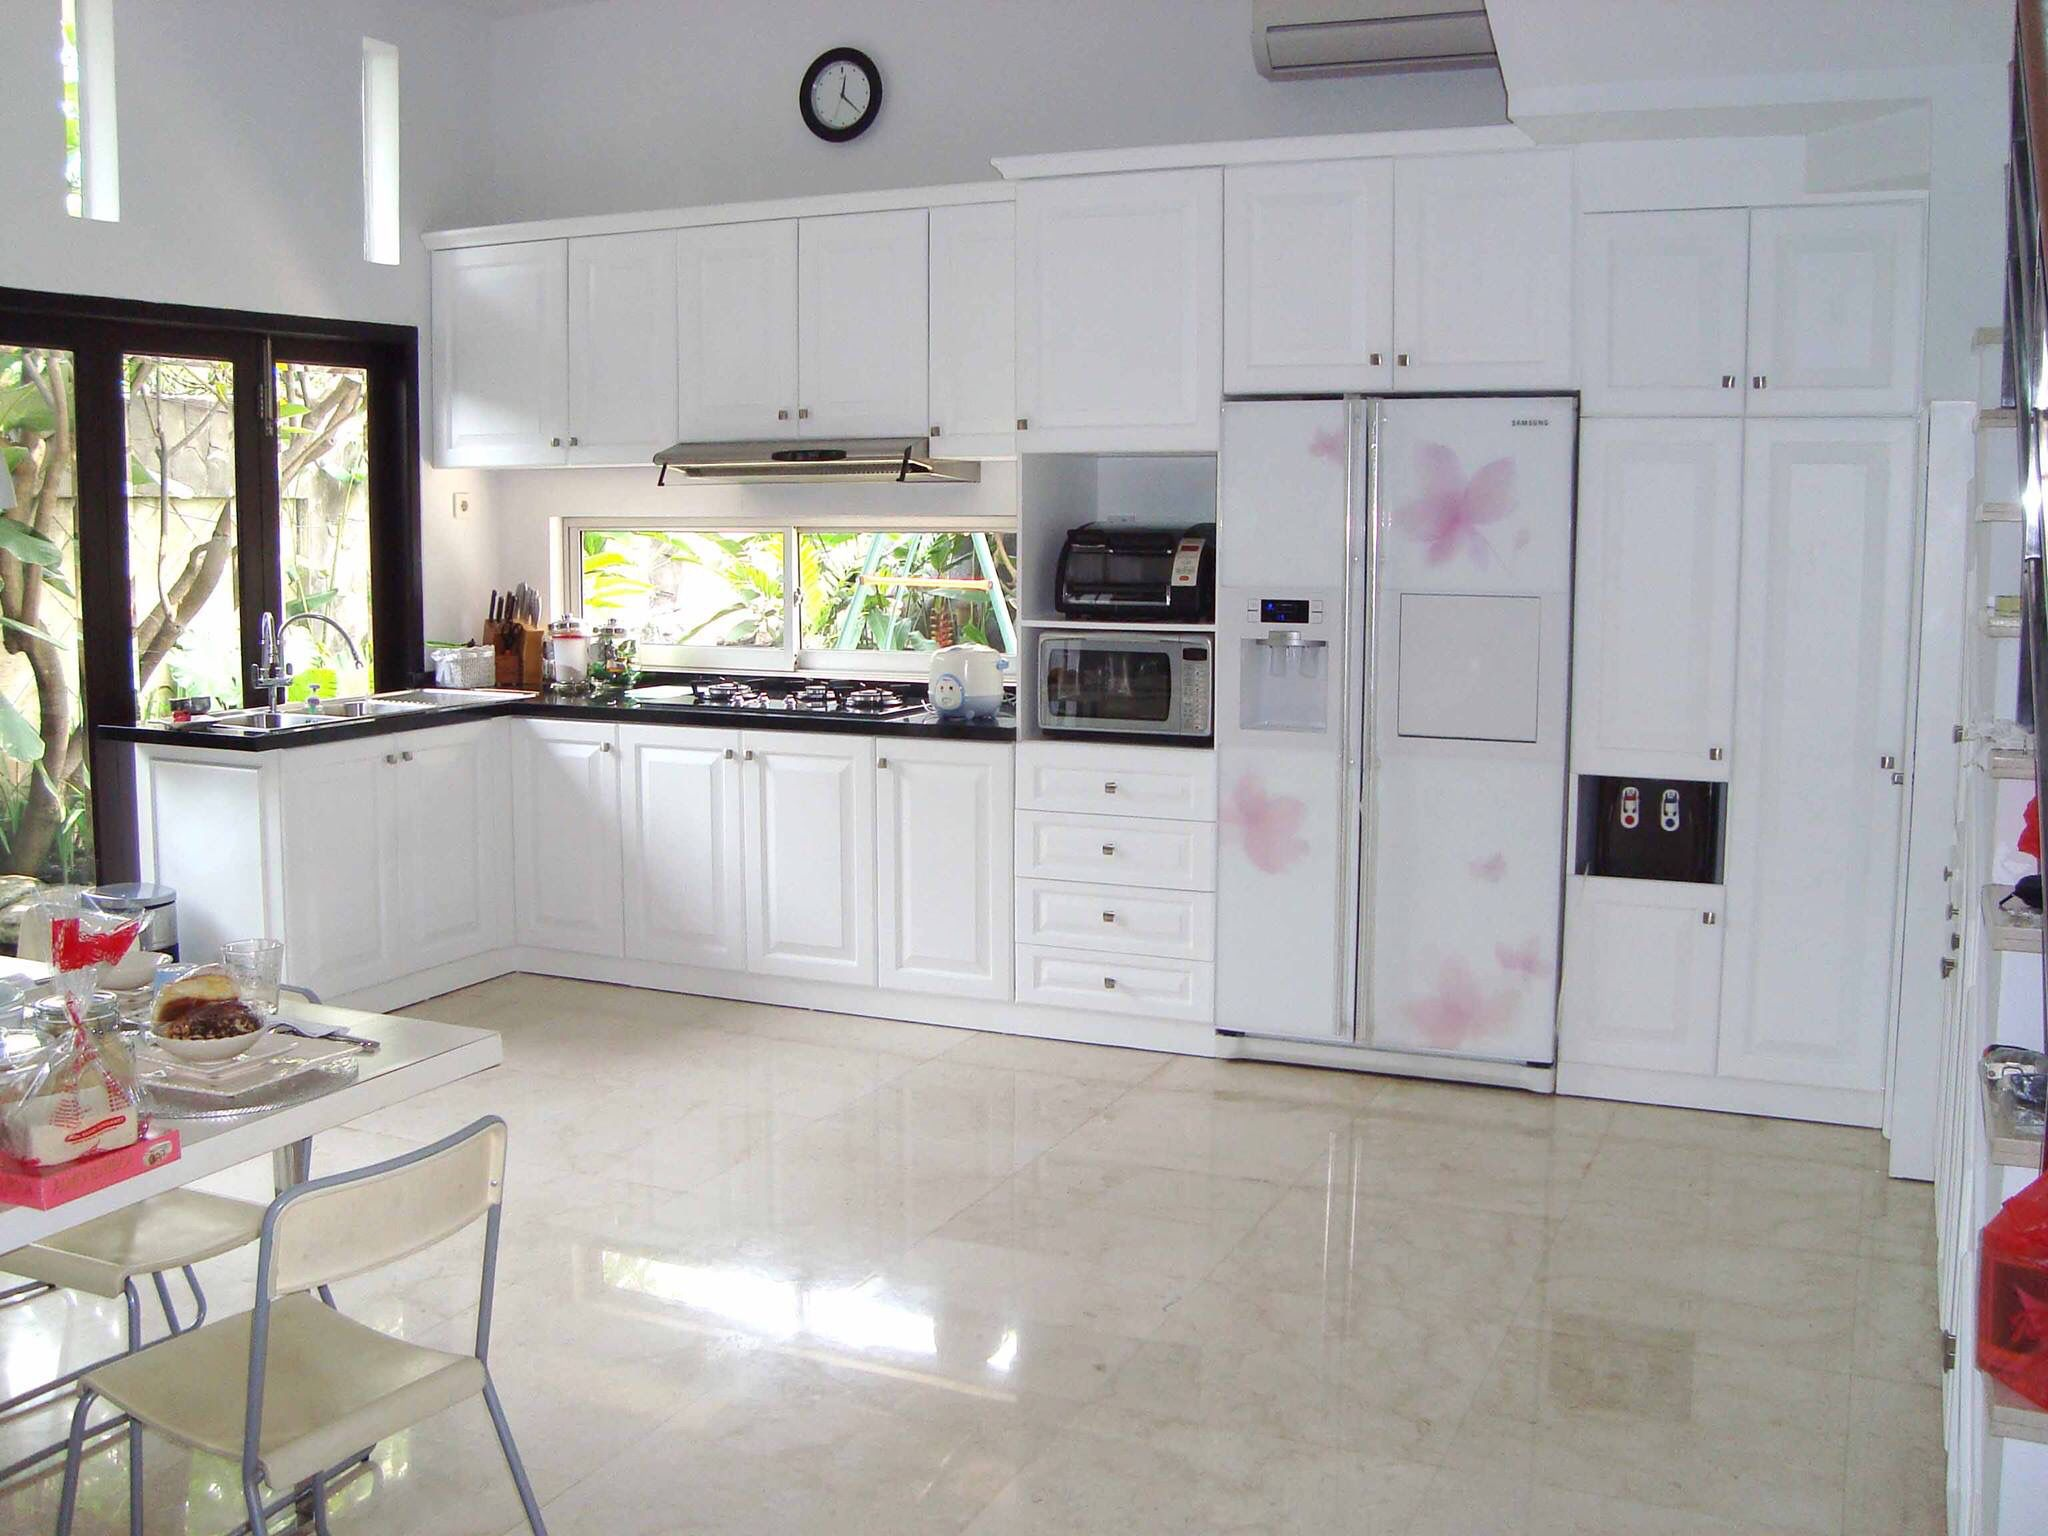 American Style Kitchen Design By Simple Luxury Interior, Indonesia